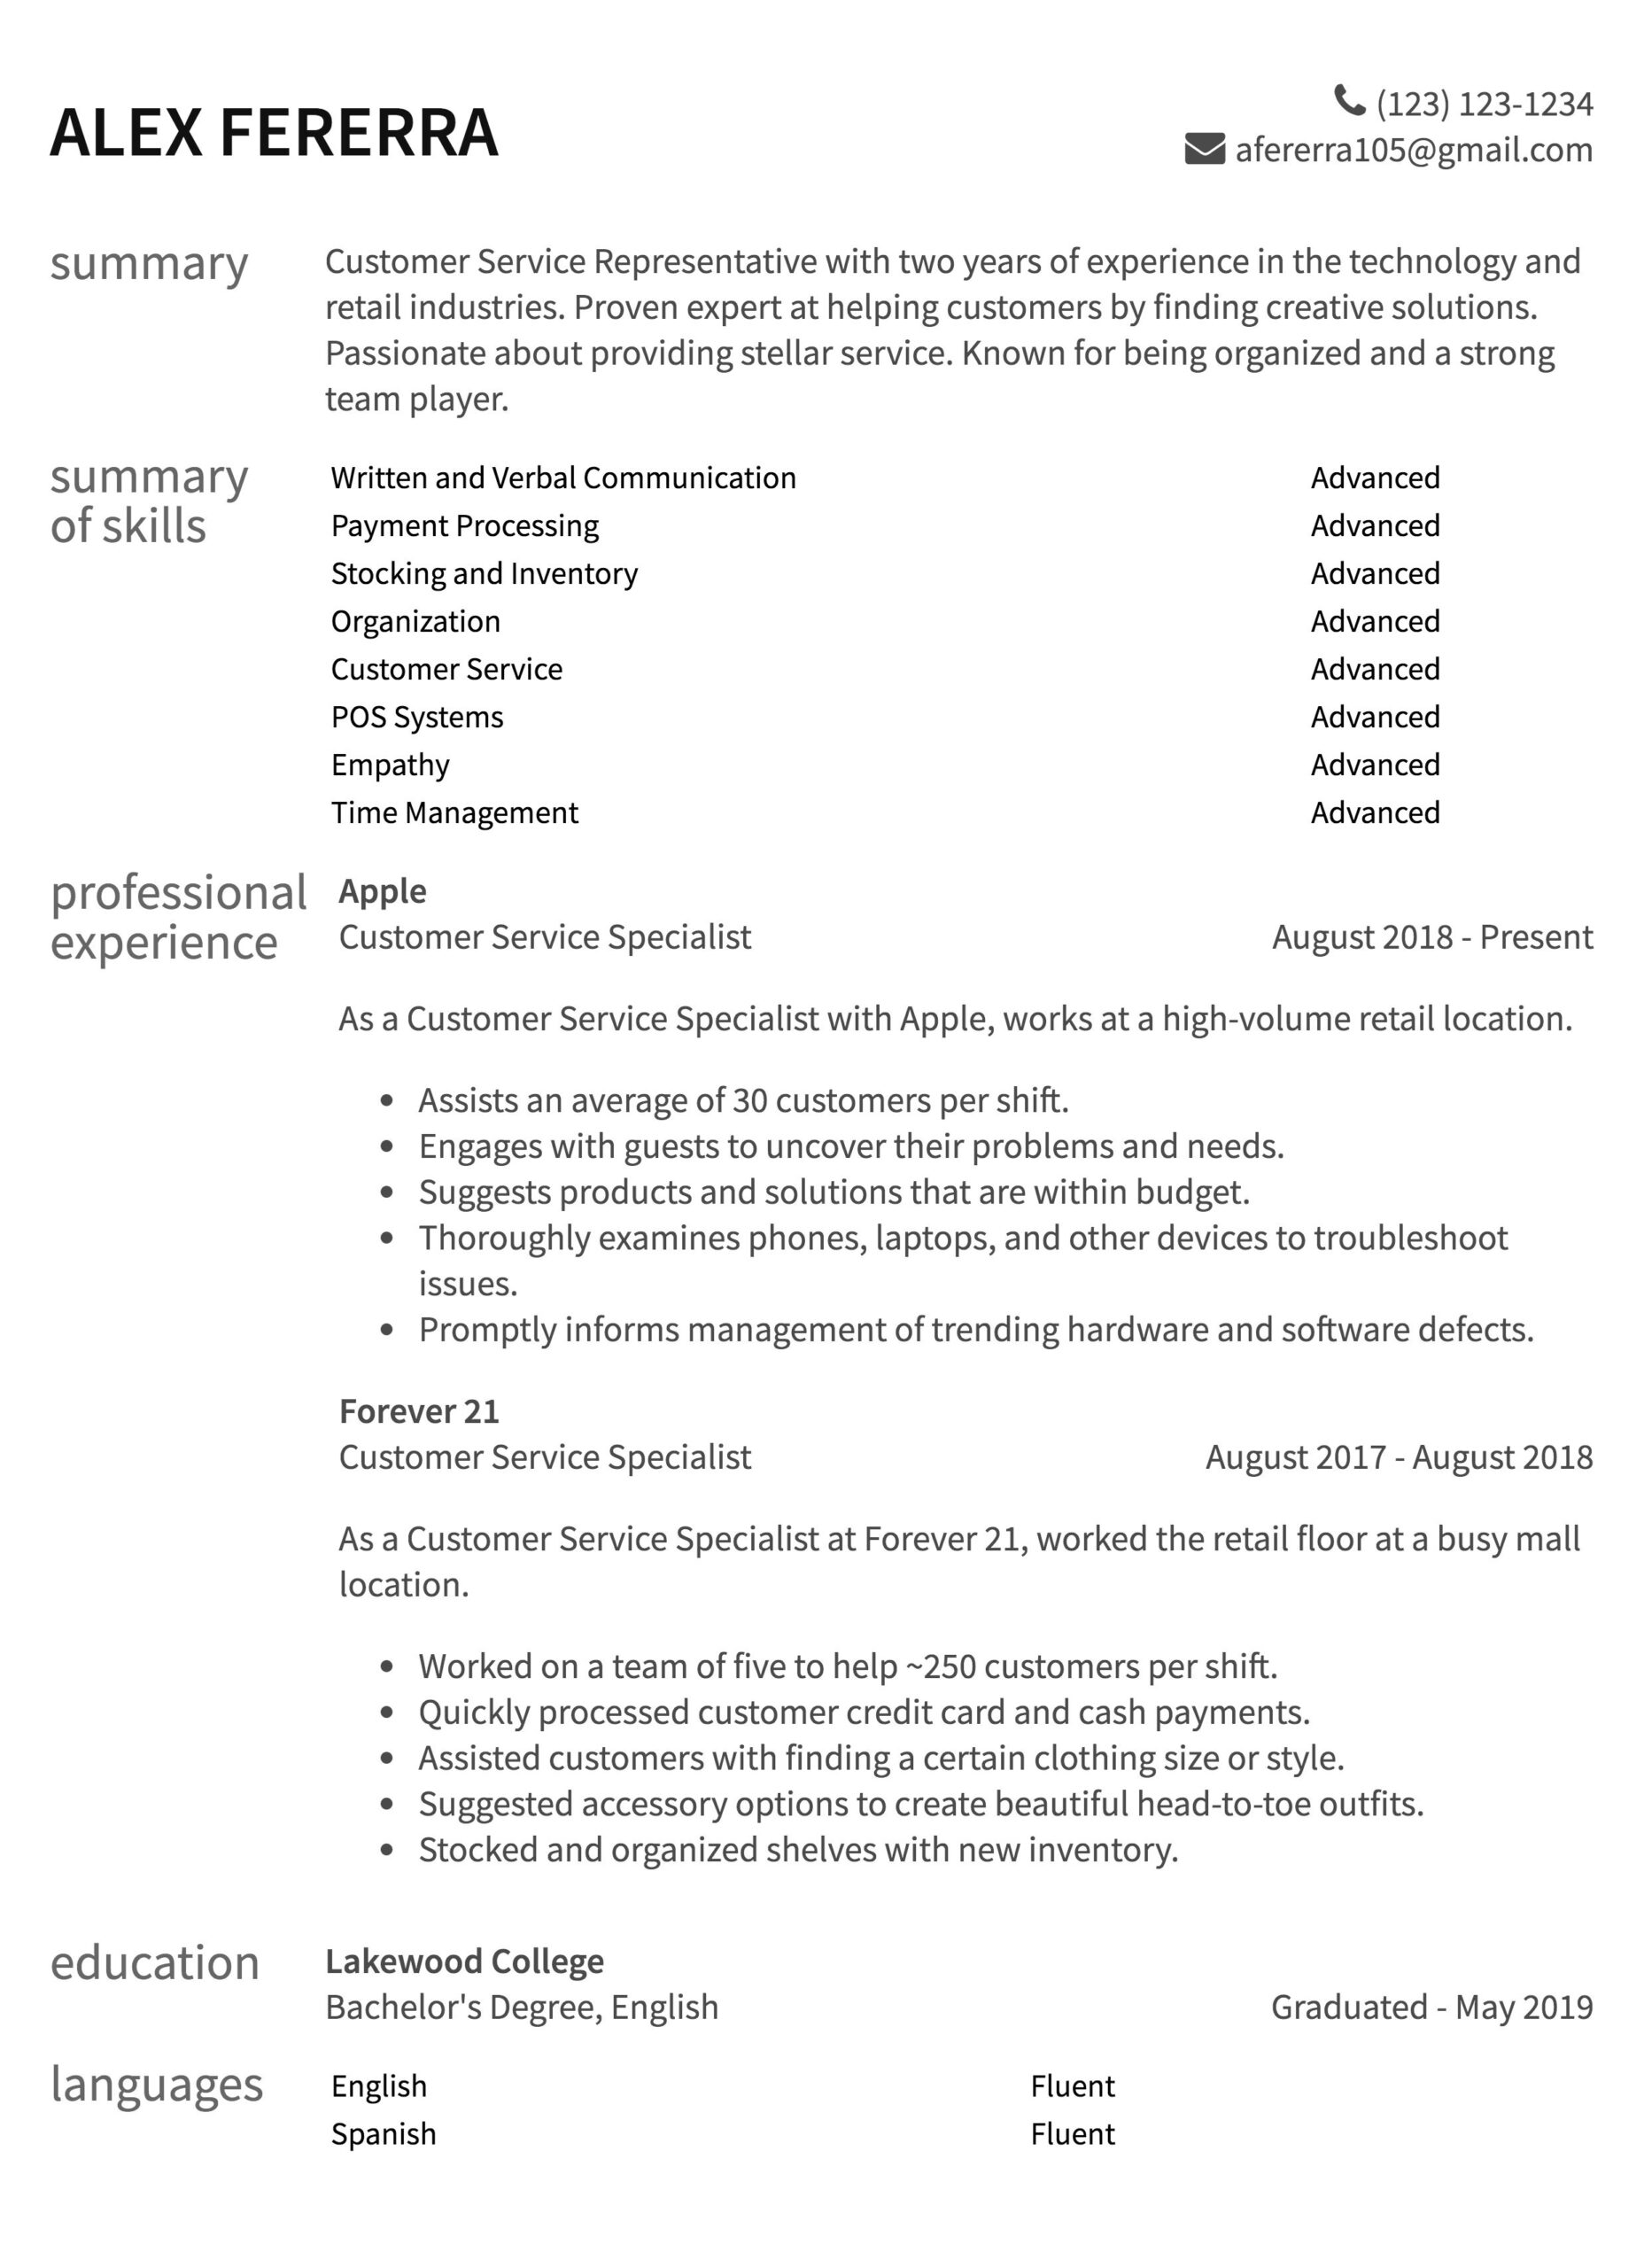 customer service resume samples to guide retail job description for two year exp medical Resume Retail Customer Service Job Description For Resume